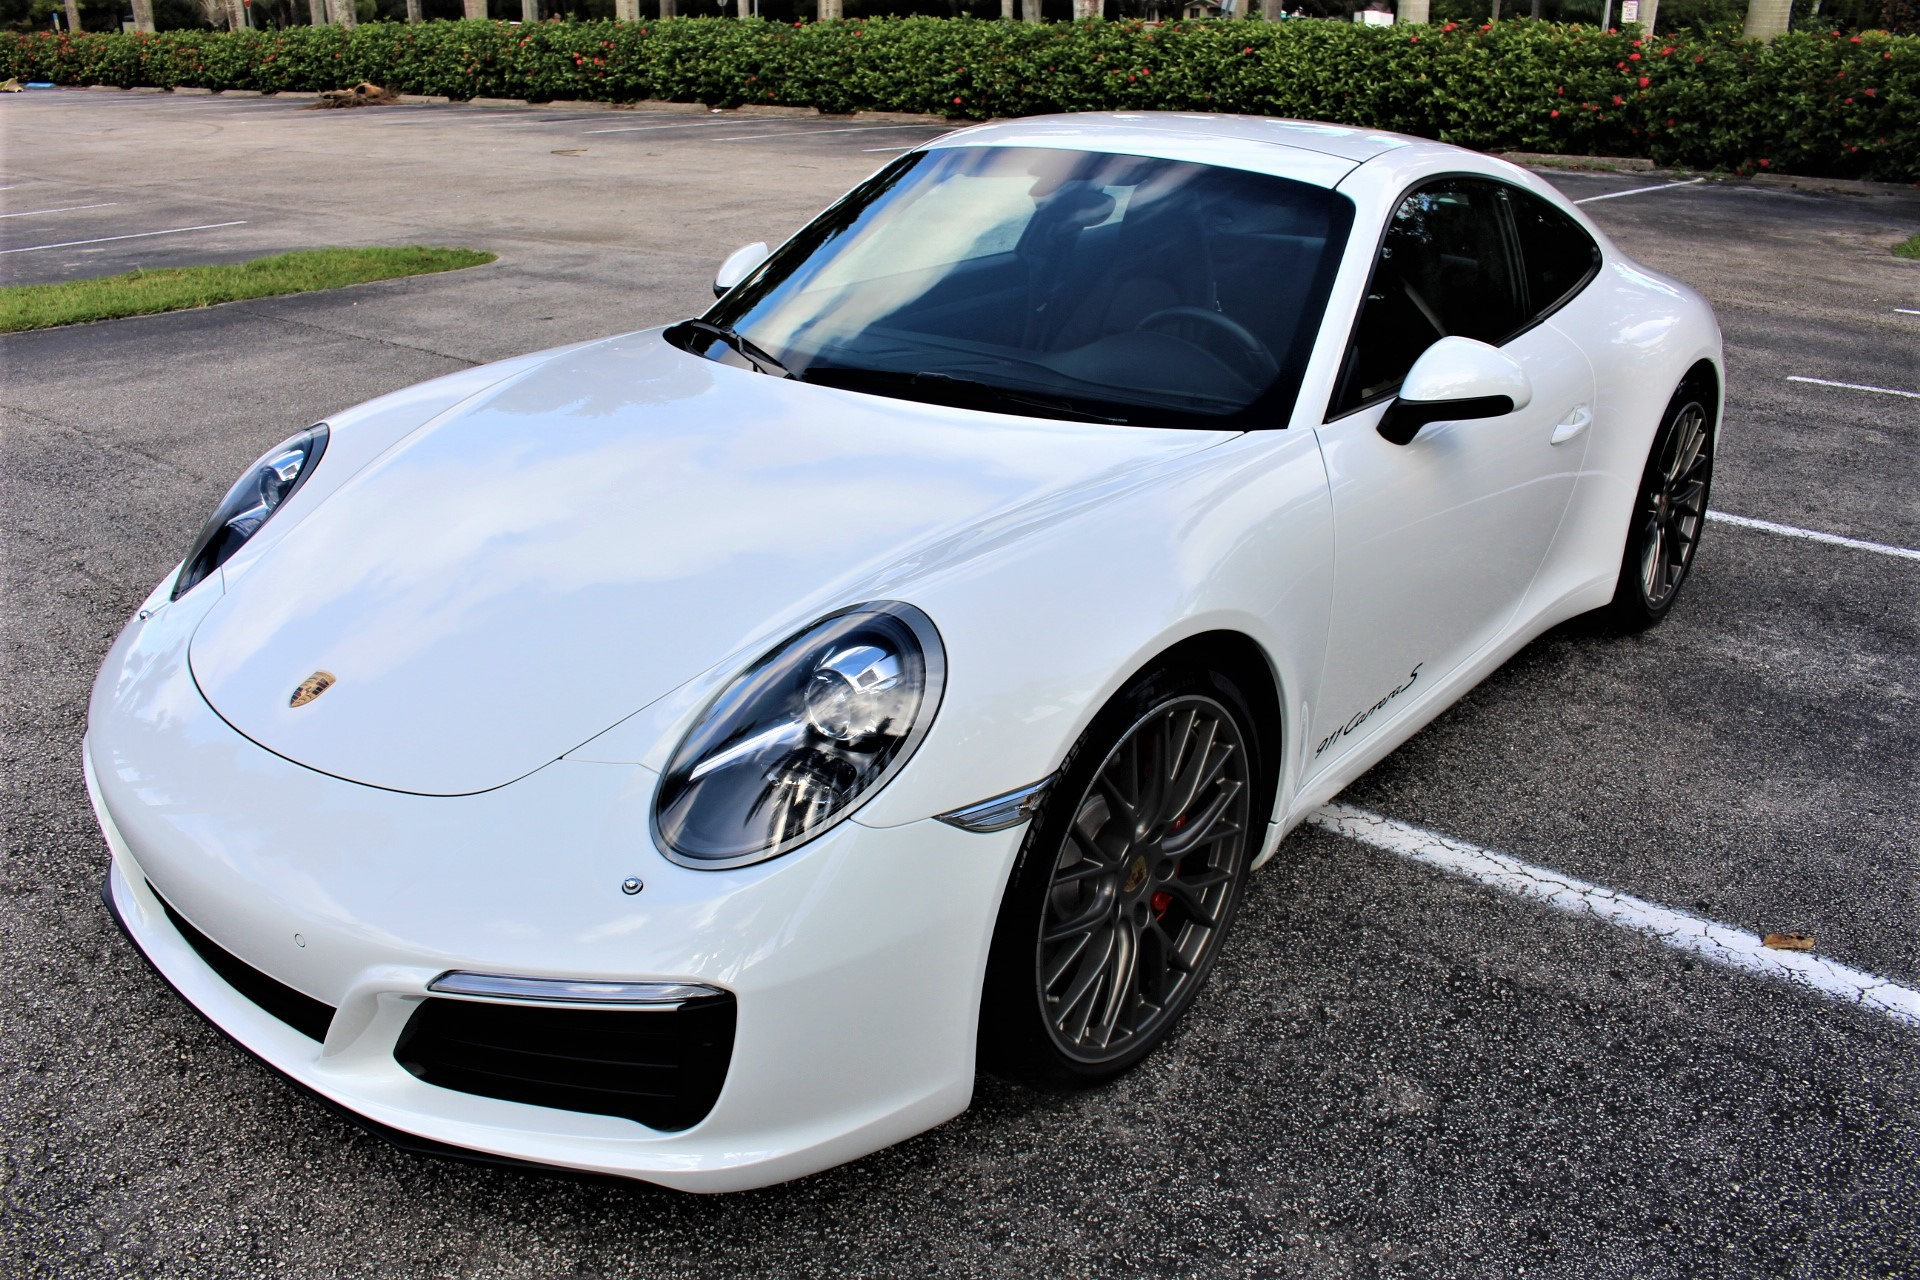 Used 2017 Porsche 911 Carrera S for sale Sold at The Gables Sports Cars in Miami FL 33146 3